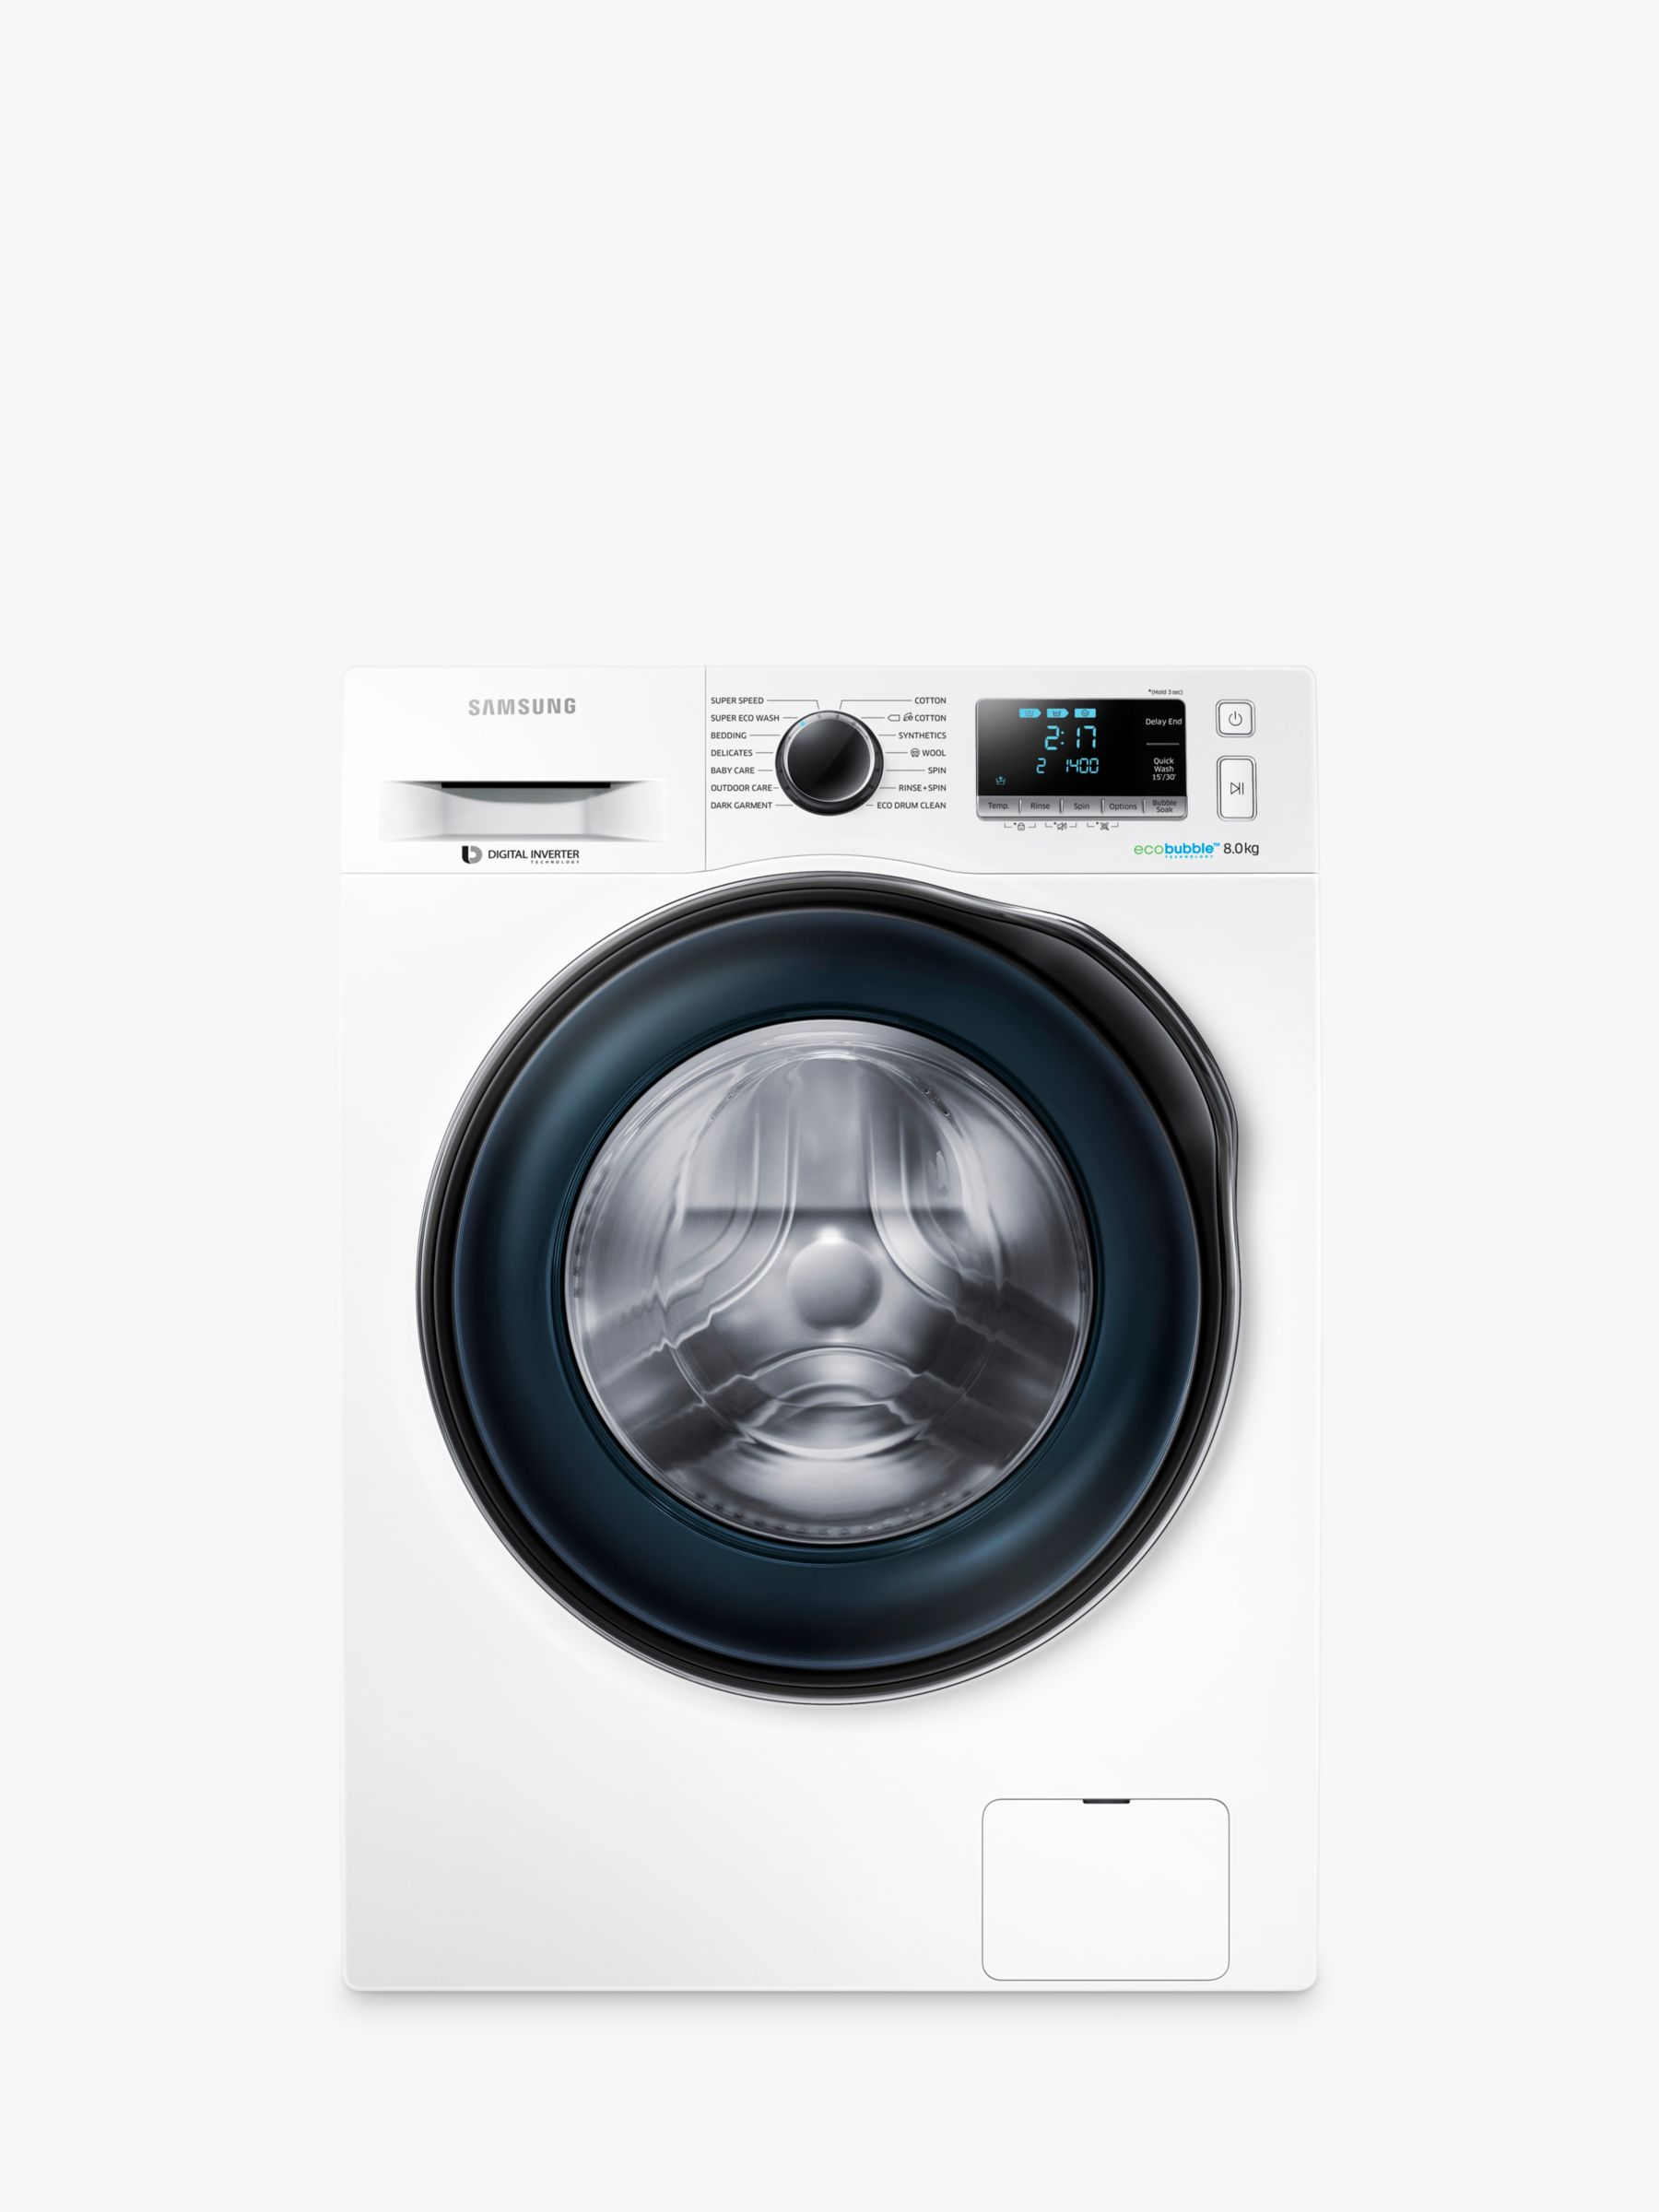 Samsung Samsung WW80J6410CW Freestanding Washing Machine, 8kg Load, A+++ Energy Rating, 1400rpm Spin, White